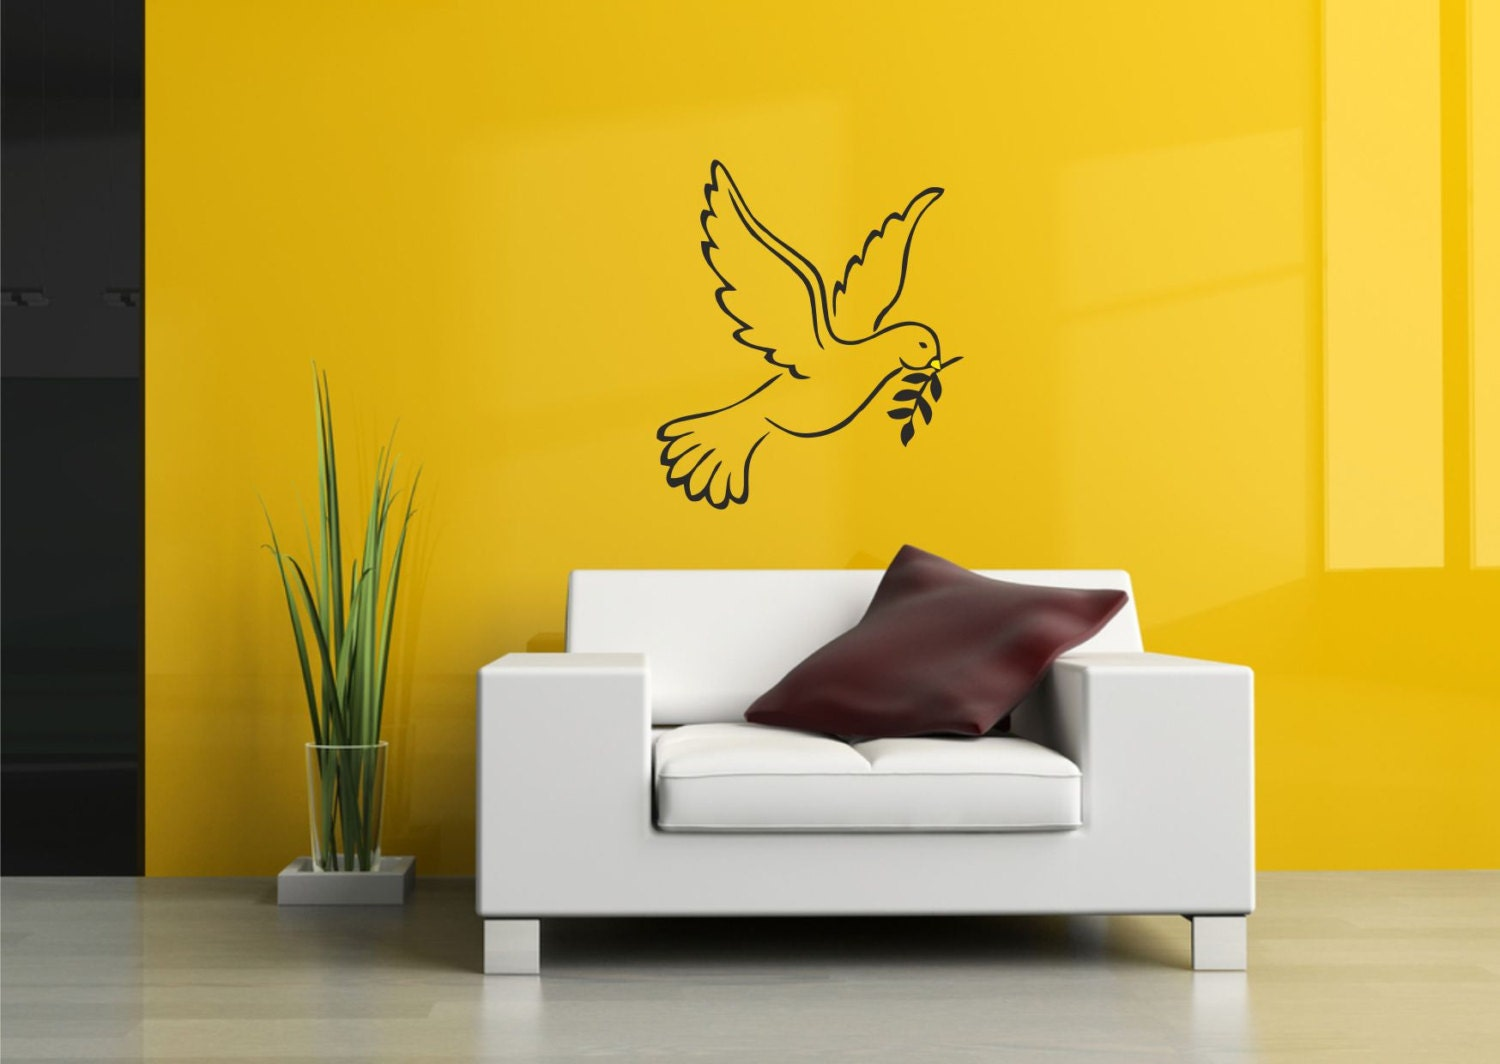 White Dove Wall Decor: Dove birds wedding decor vinyl wall decal ...